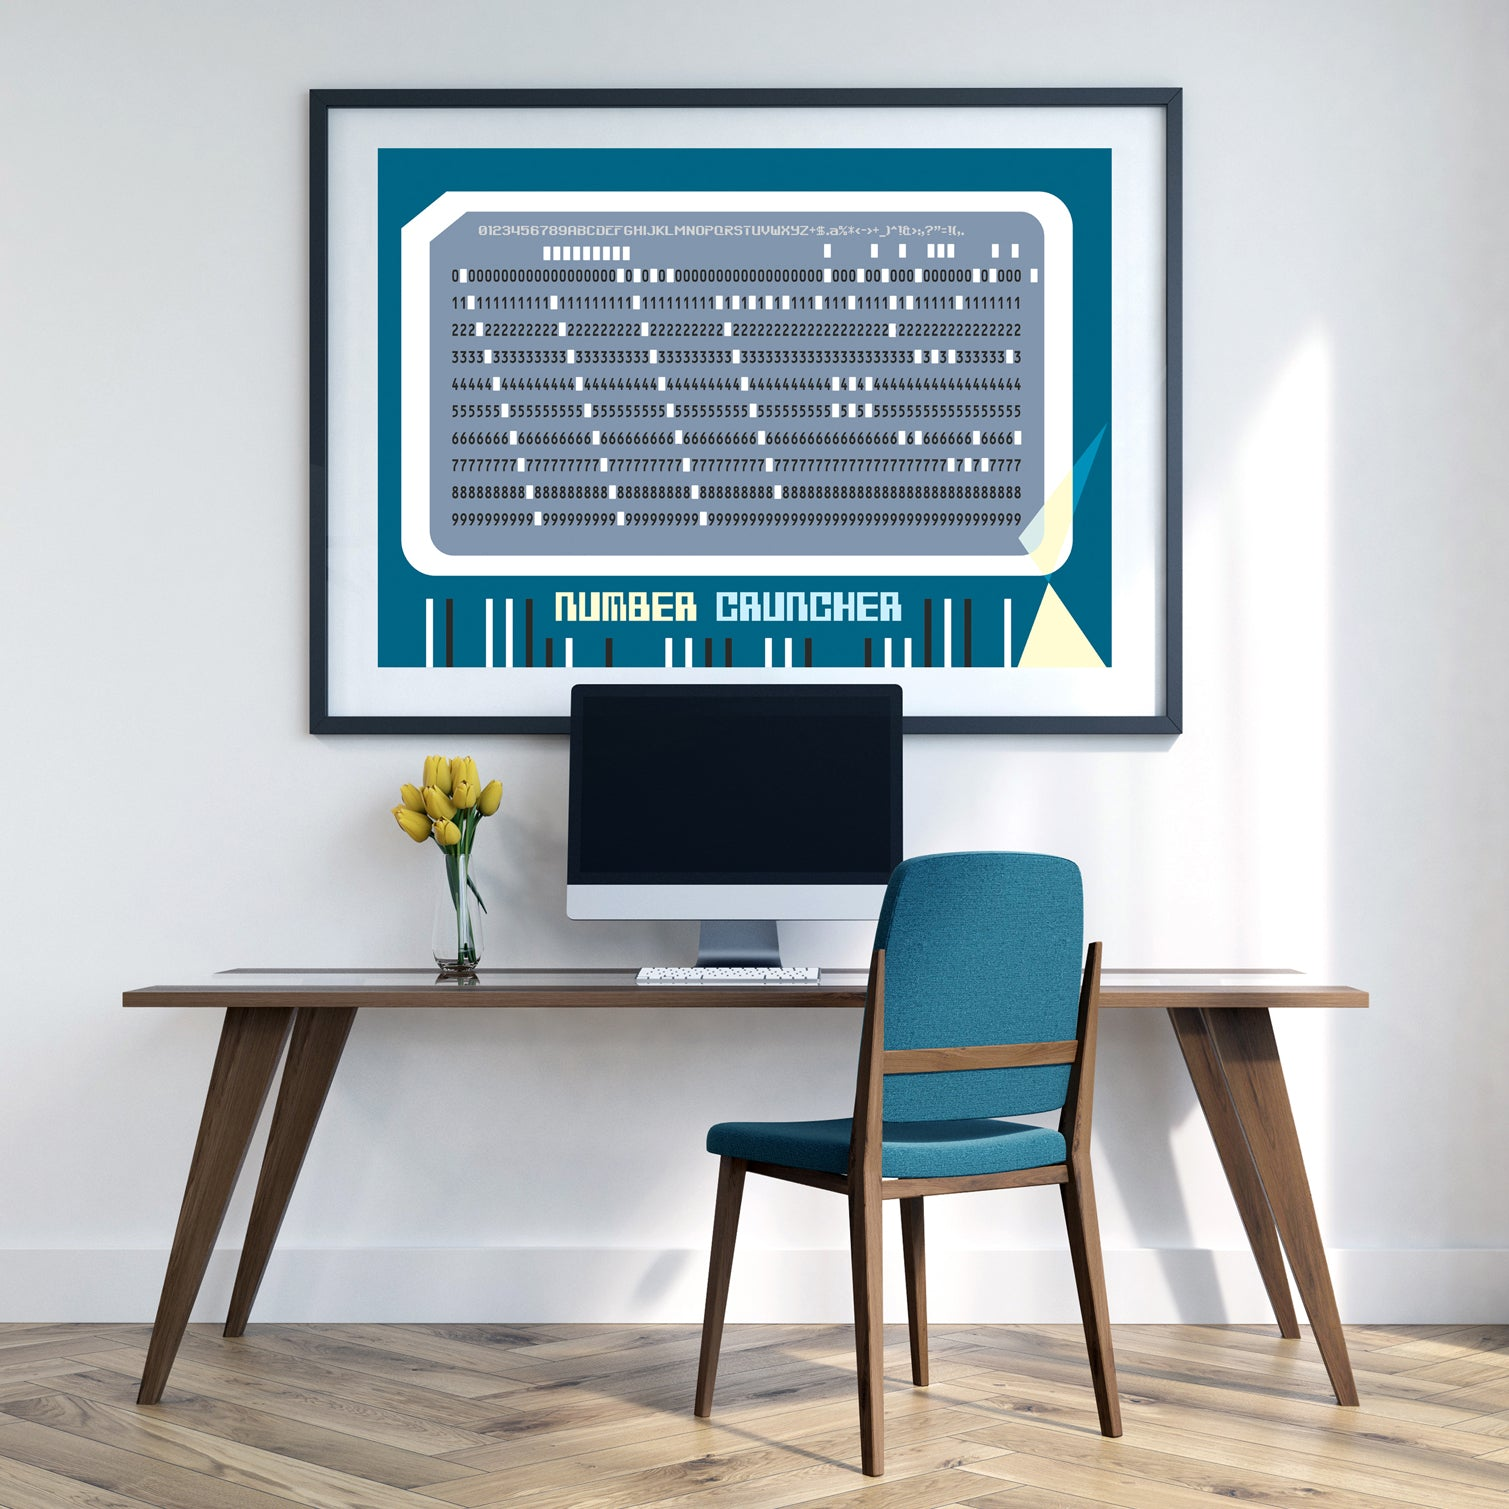 Retro 'number cruncher' 60's computer punched card art print by carnabystreetgallery.com